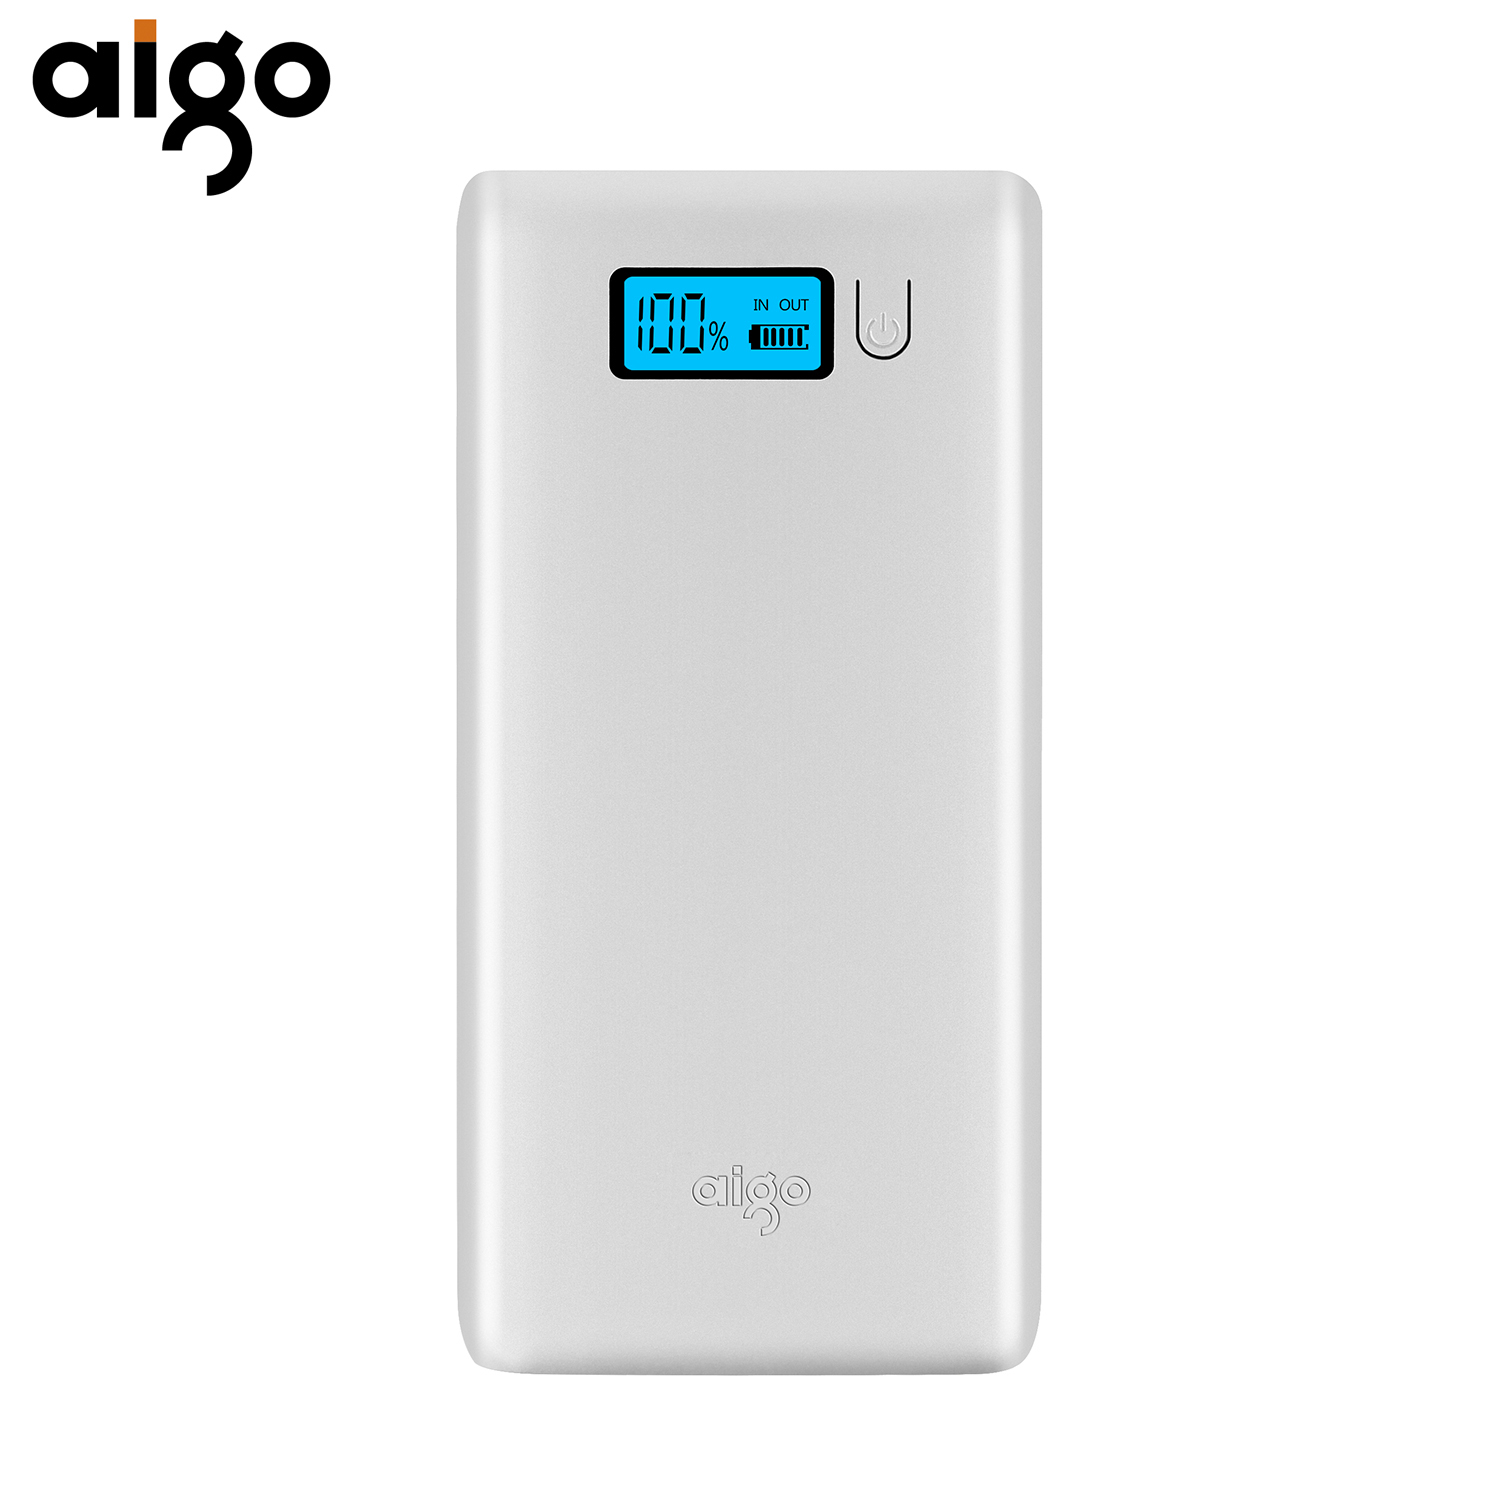 Aigo Power Bank 20000mAh Dual USB External Battery LCD Display LED Light Powerbank Portable Bateria Externa for Xiaomi Mi Meizu